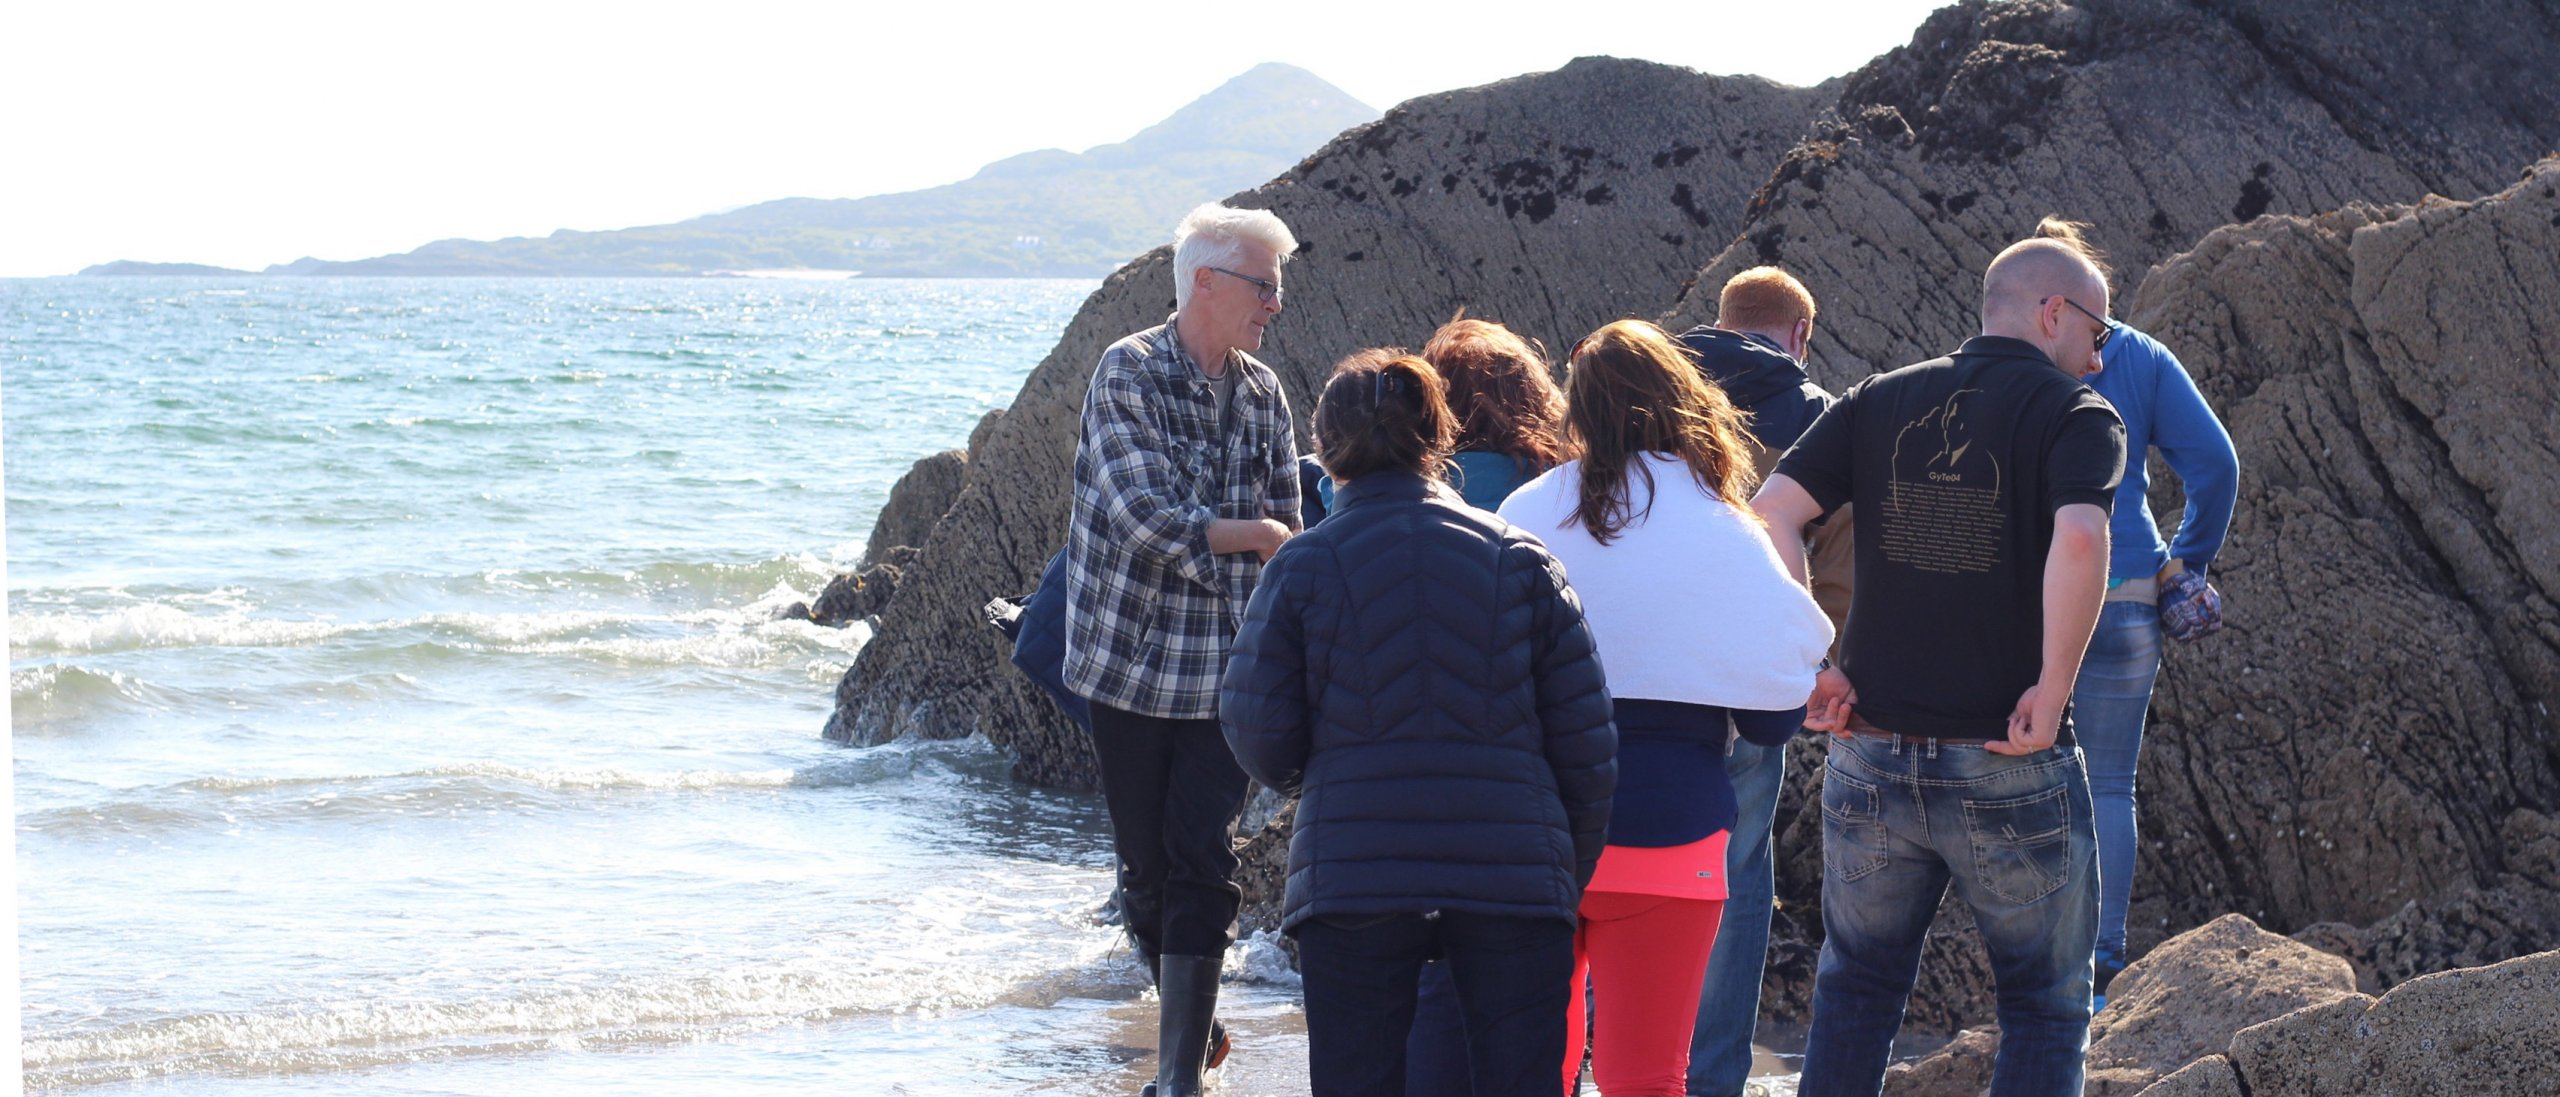 Vagabond Tour Group foraging for seaweed in Ireland